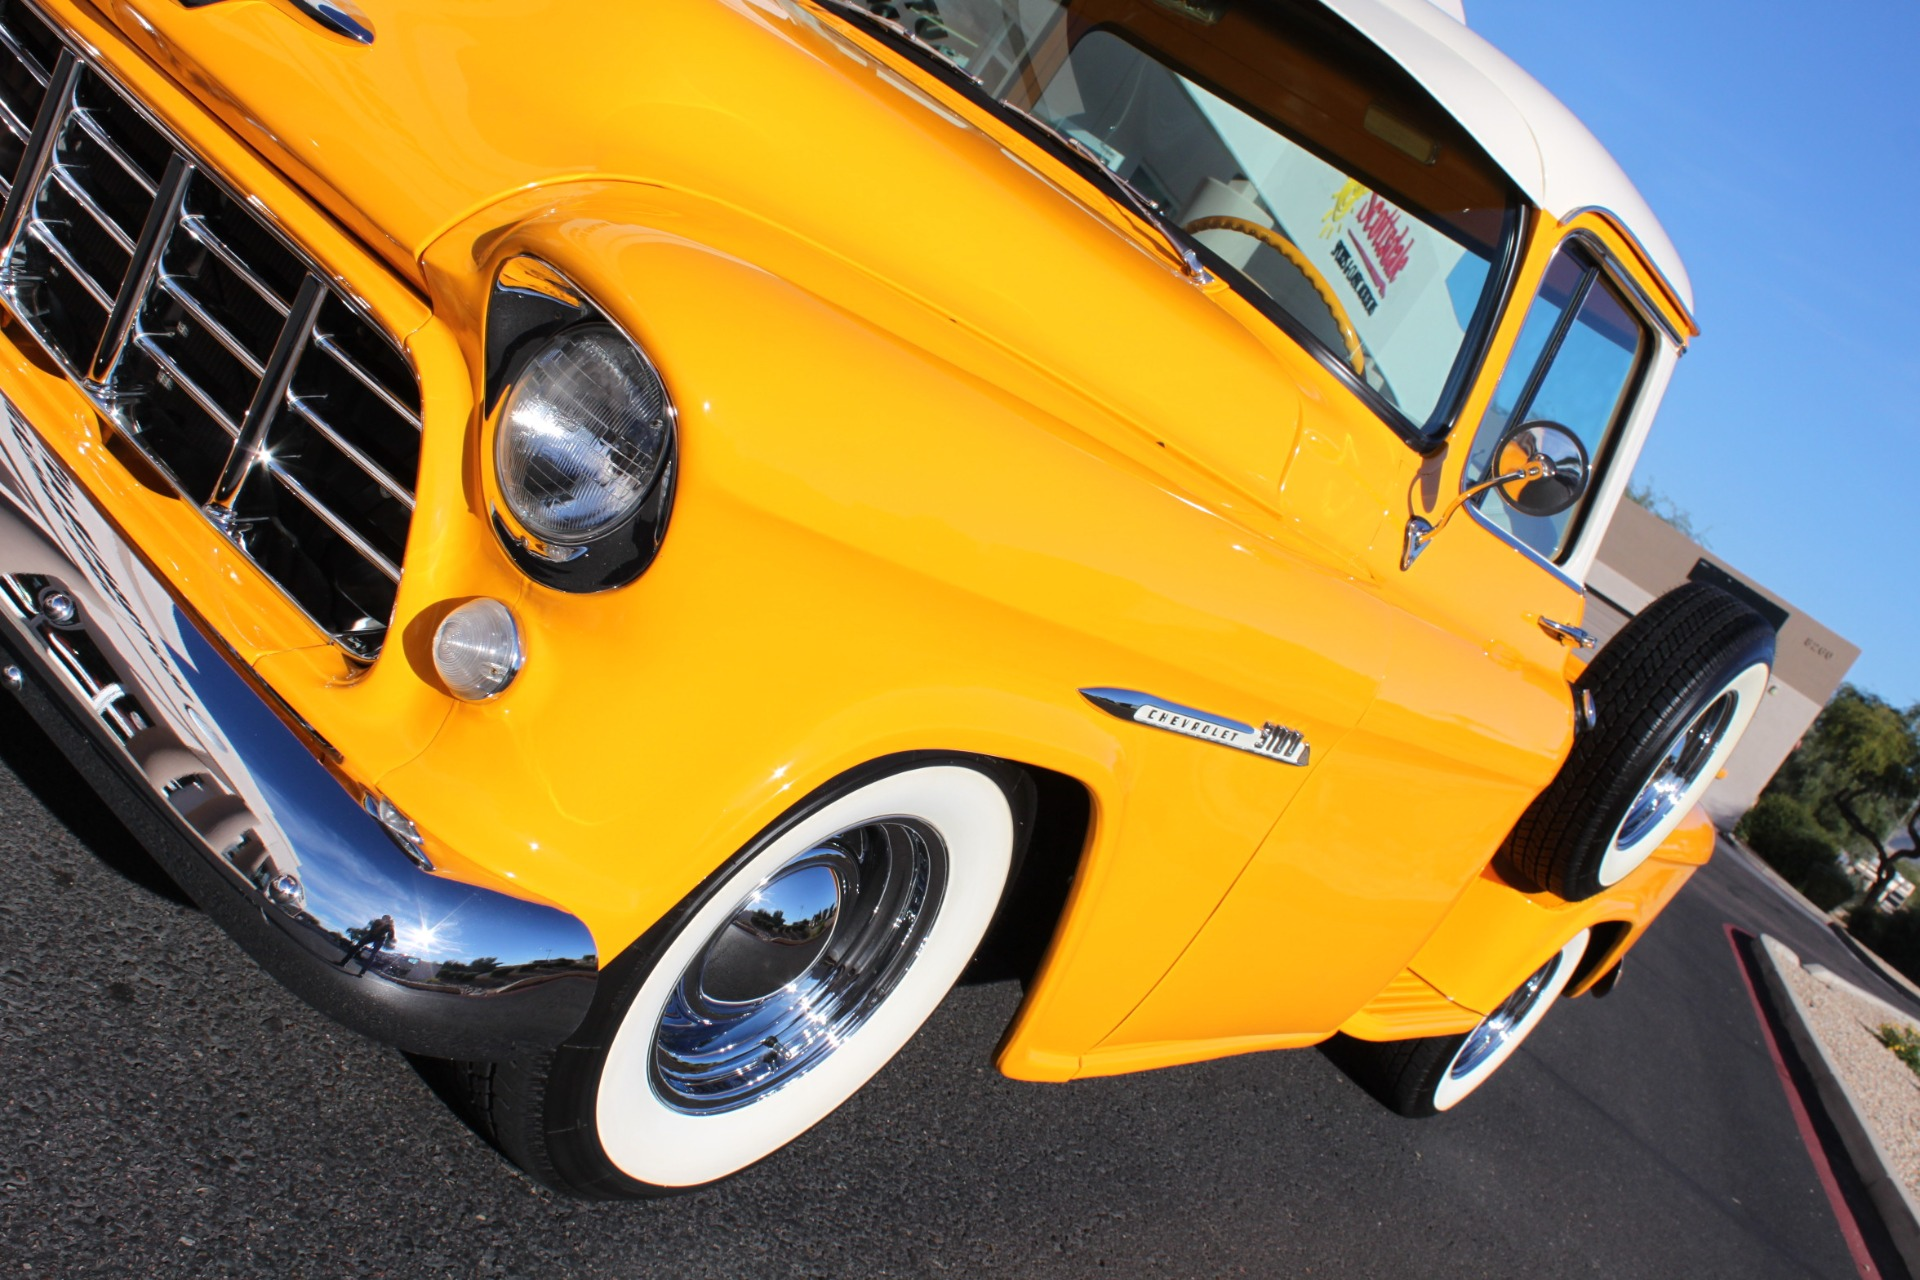 Used-1955-Chevrolet-3100-Pickup-Truck-Grand-Cherokee